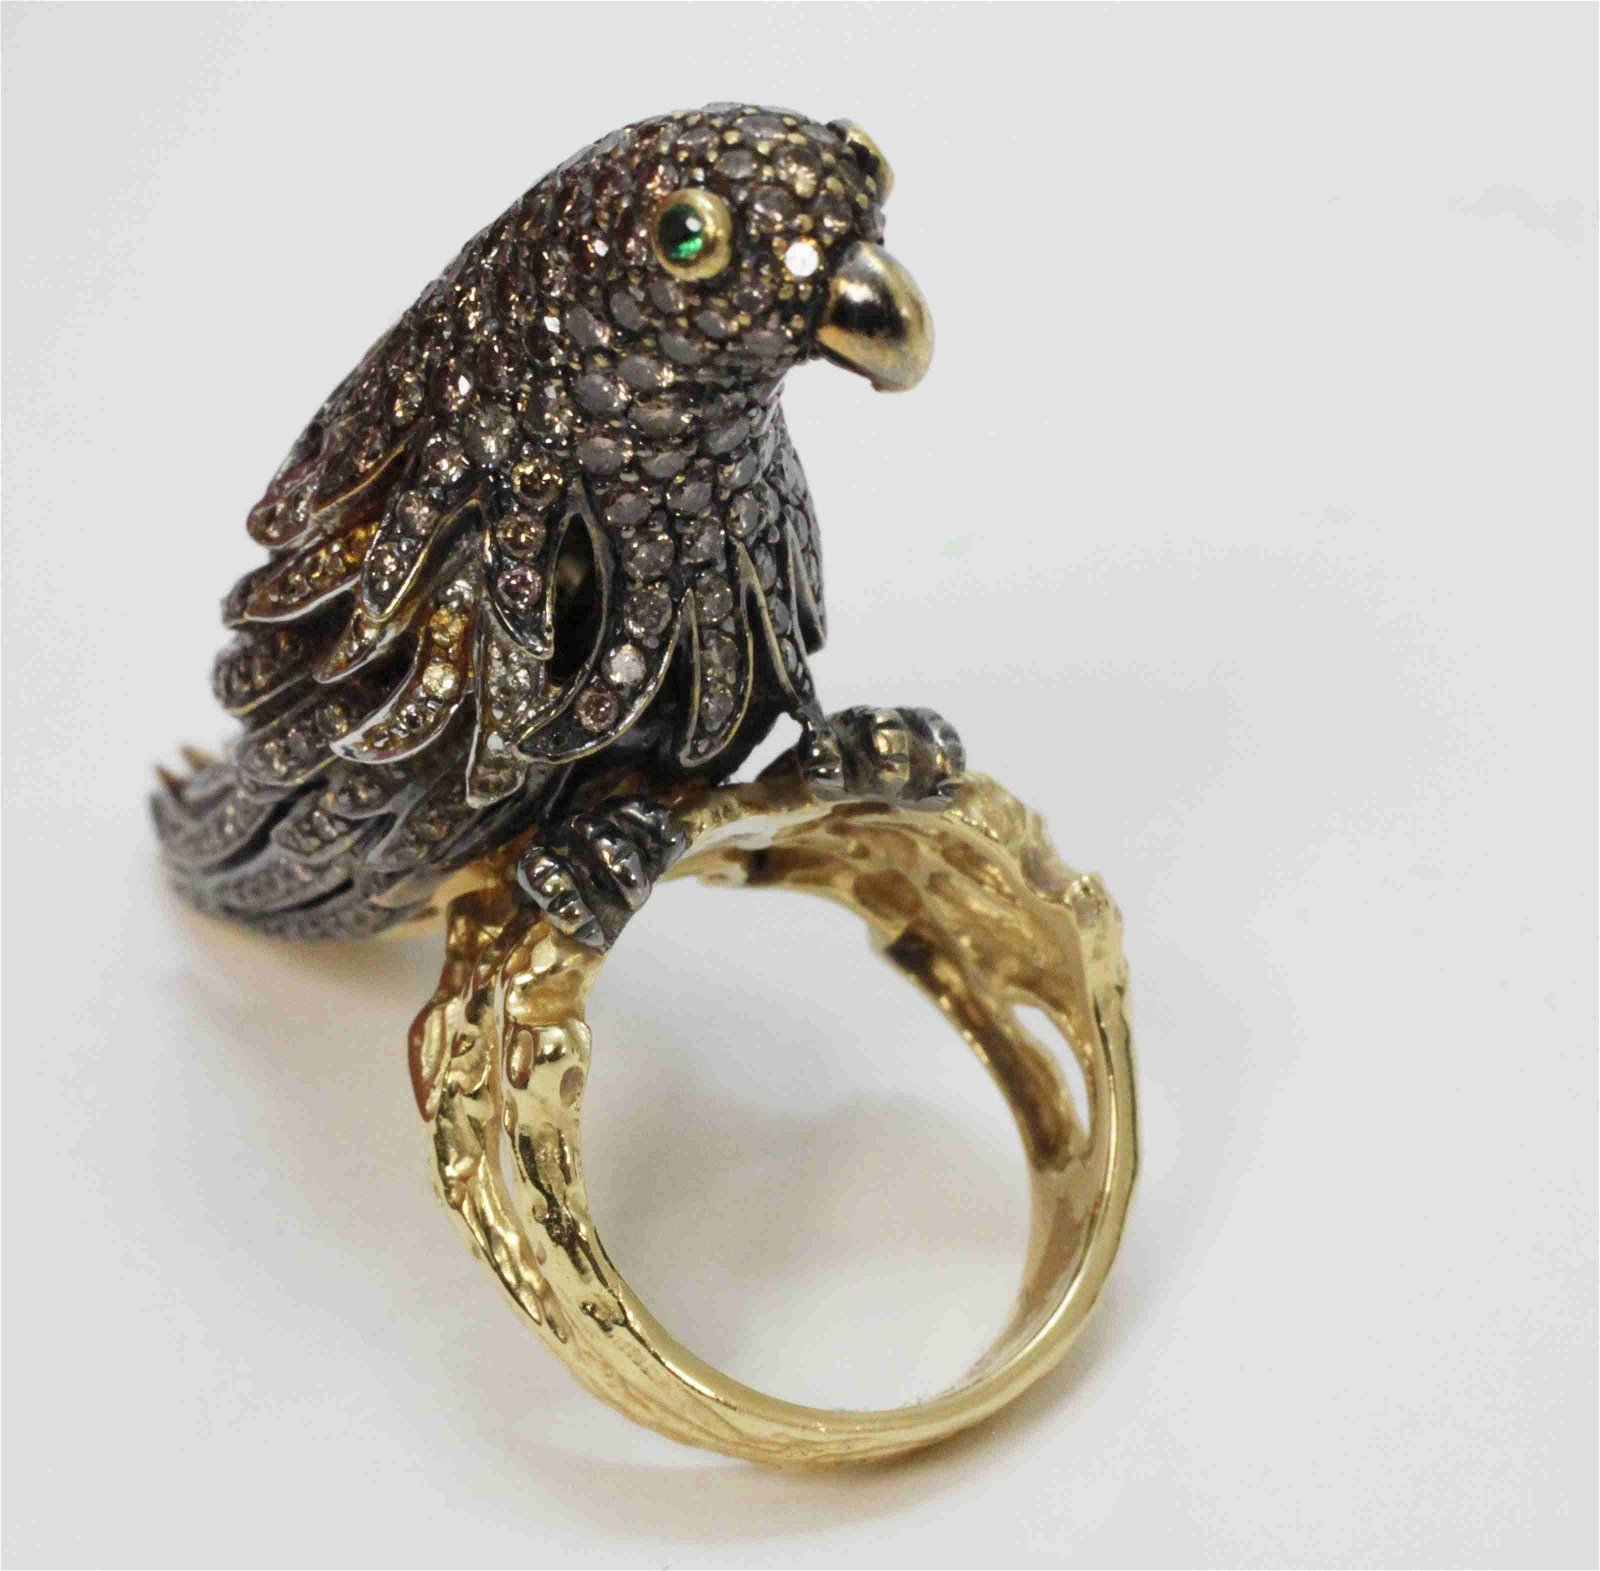 18k White & Yellow Gold Ring w a Jeweled Parrot